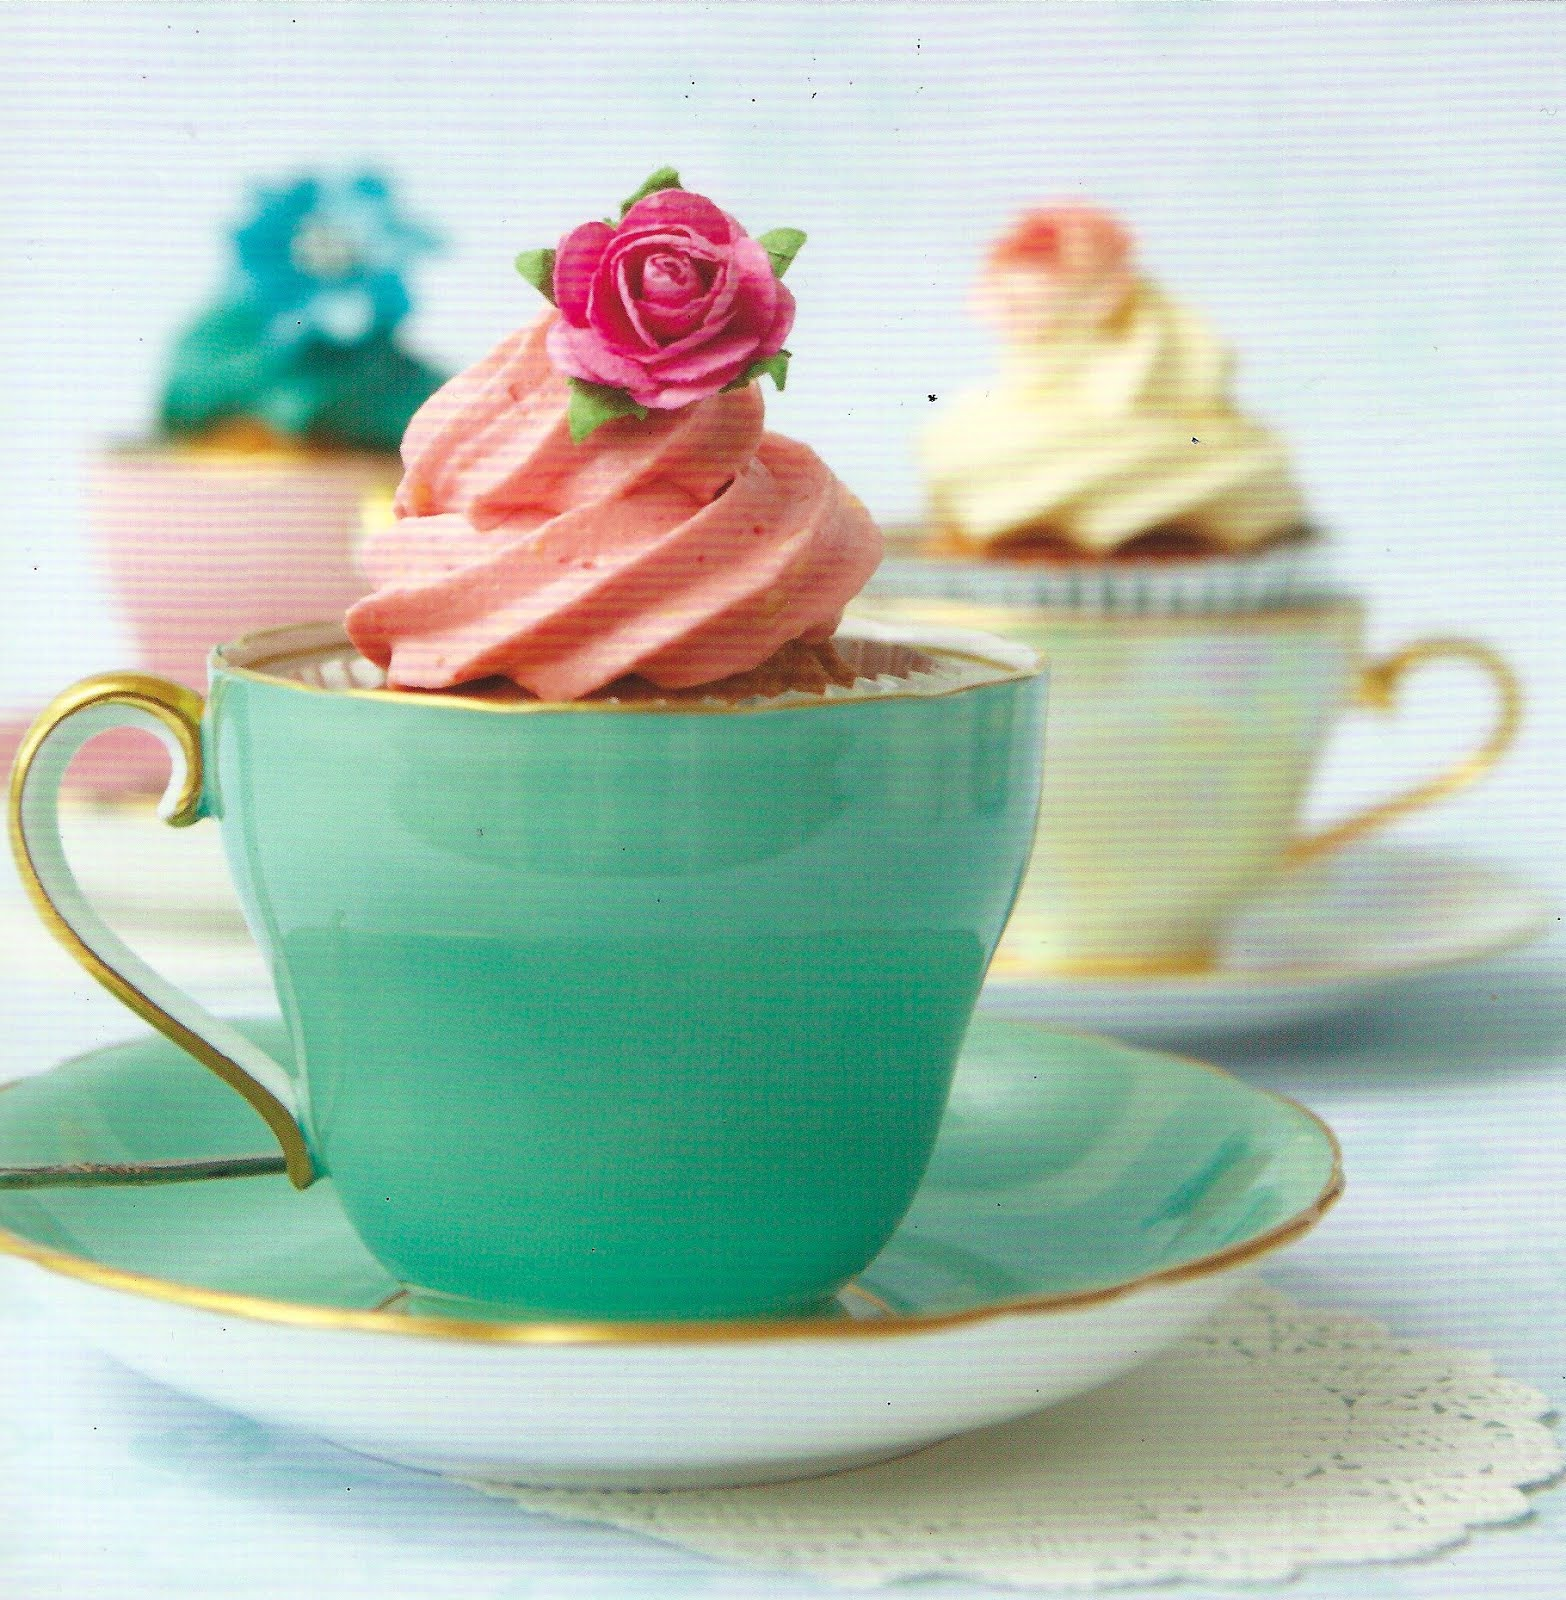 Teacup Treat